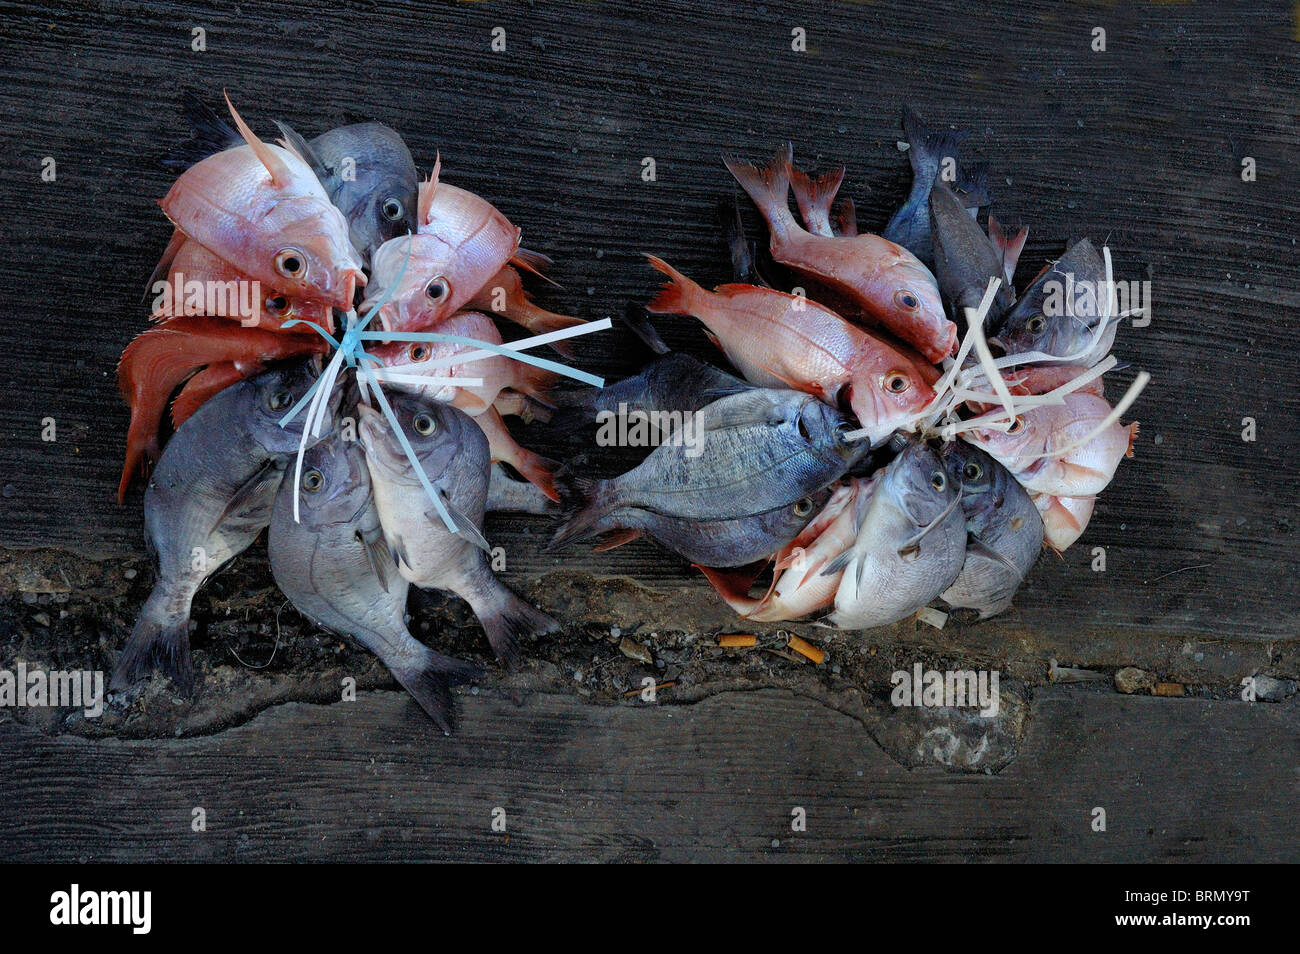 A catch of pink and grey fishes tied together - Stock Image